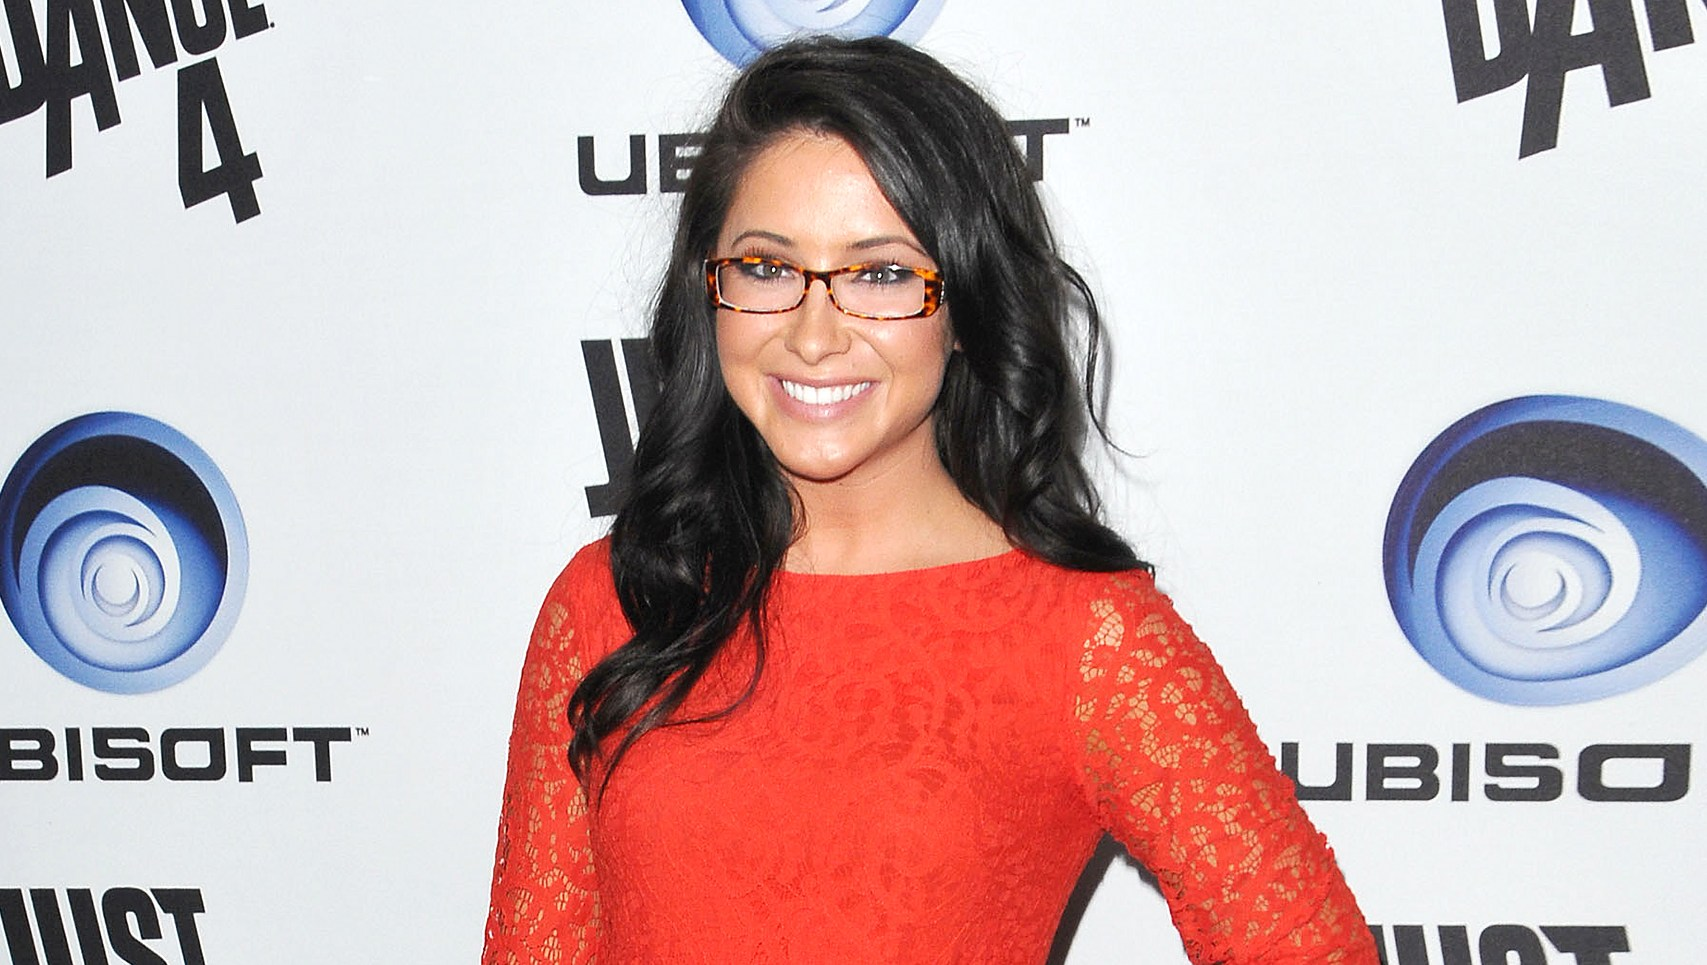 Bristol Palin Teen Mom OG